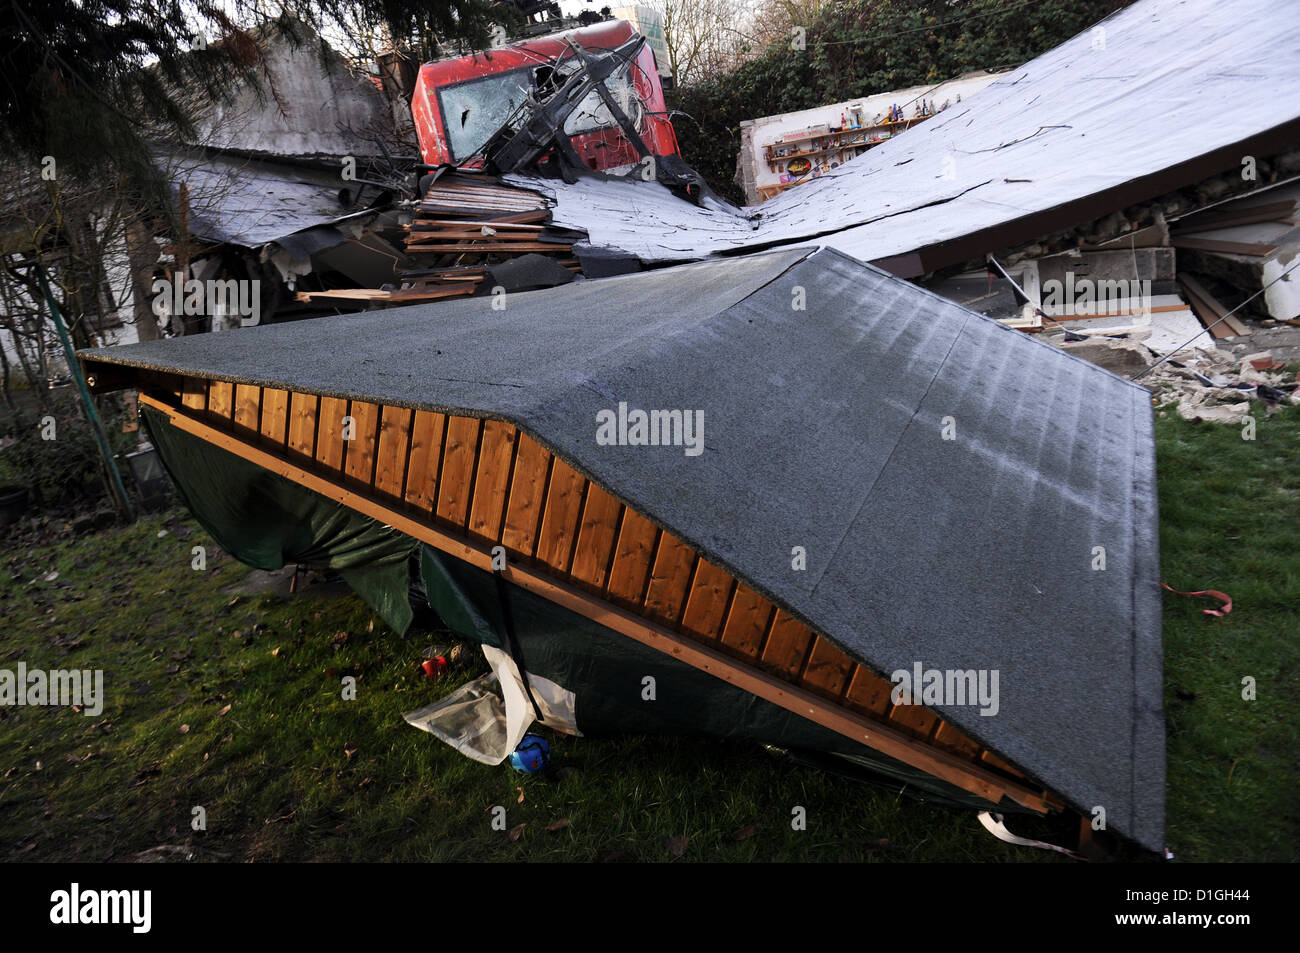 A derailed fright train is seen behind debris in Duesseldorf, Germany, 20 December 2012. On 19 December 2012, two - Stock Image